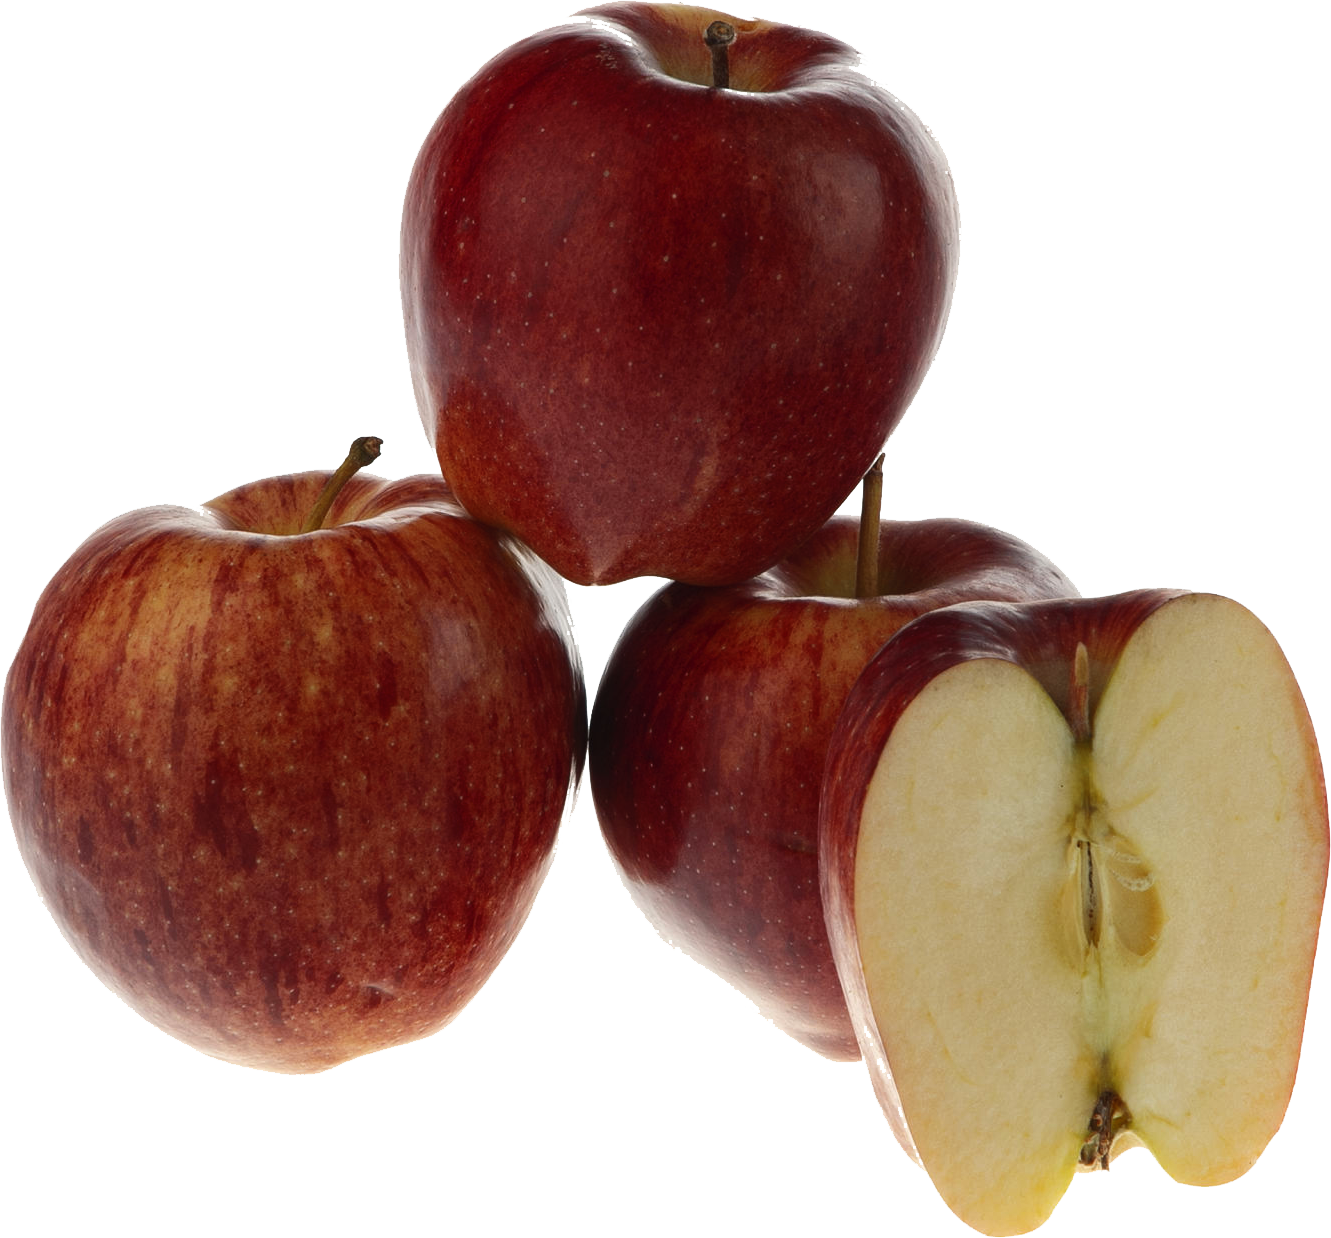 ssp apples fruits